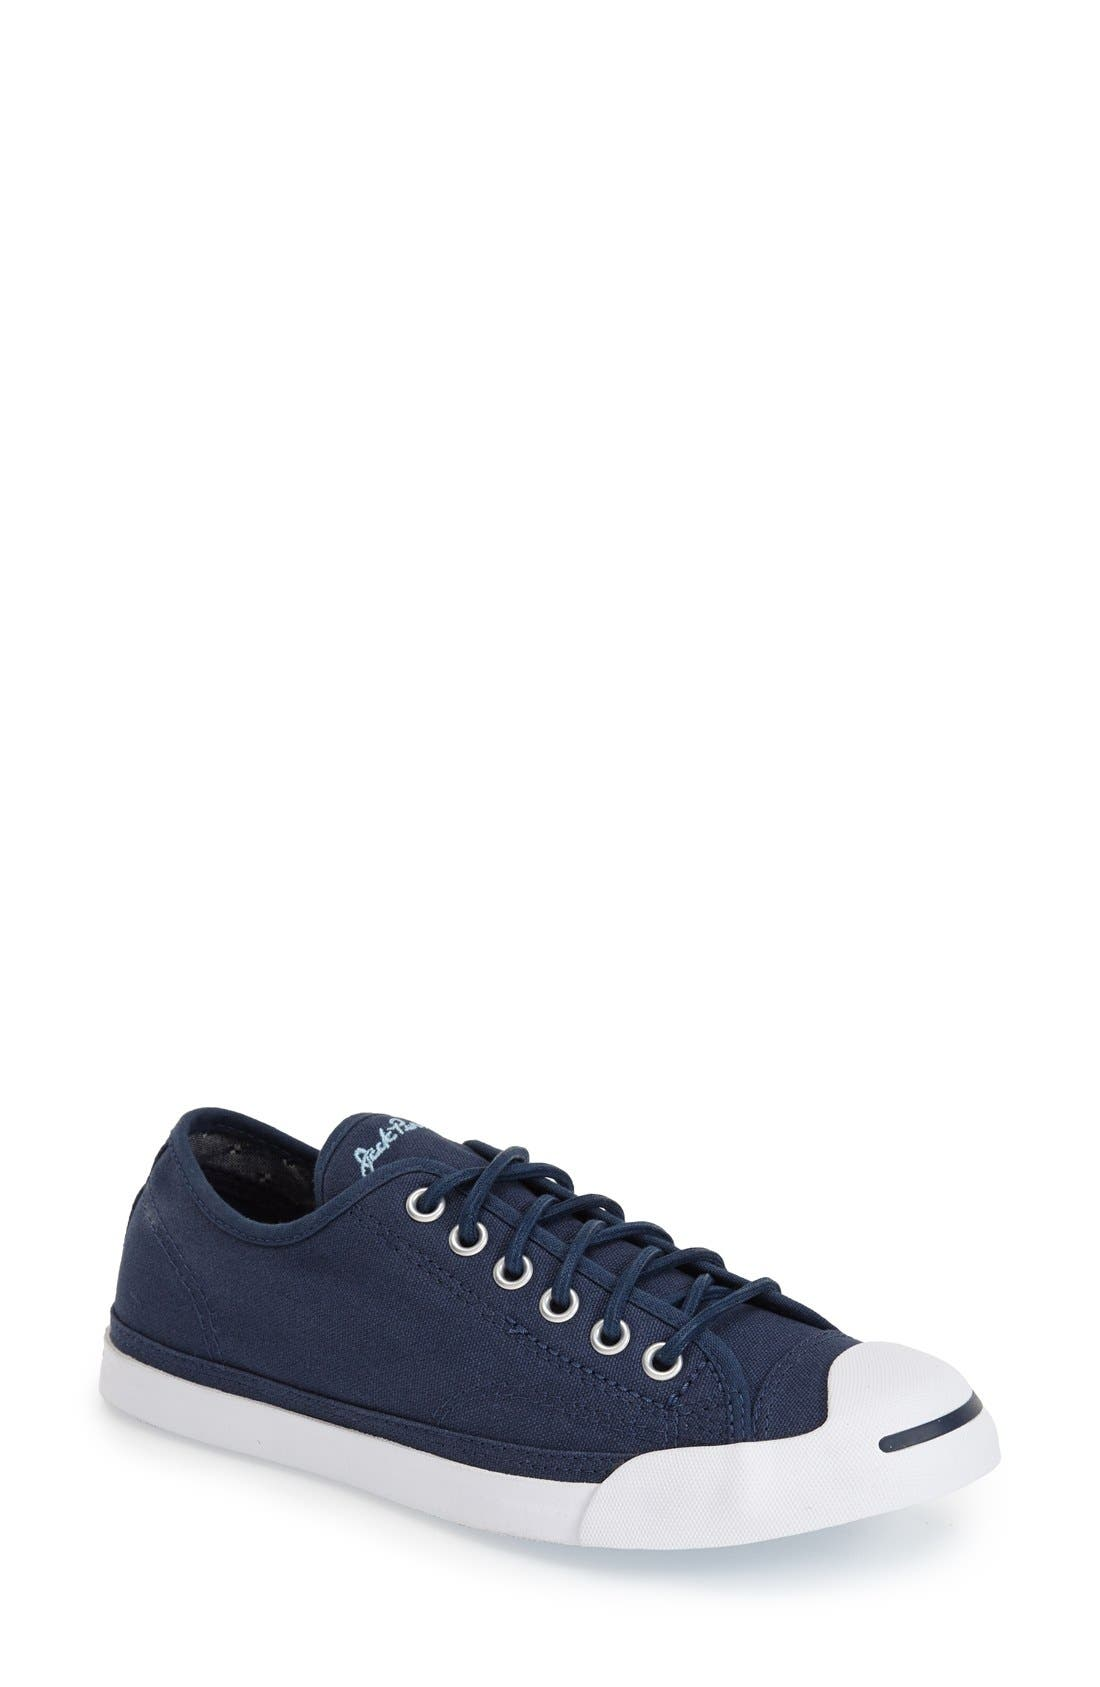 'Jack Purcell' Low Top Slip On Sneaker,                         Main,                         color, Navy/ Blue/ White